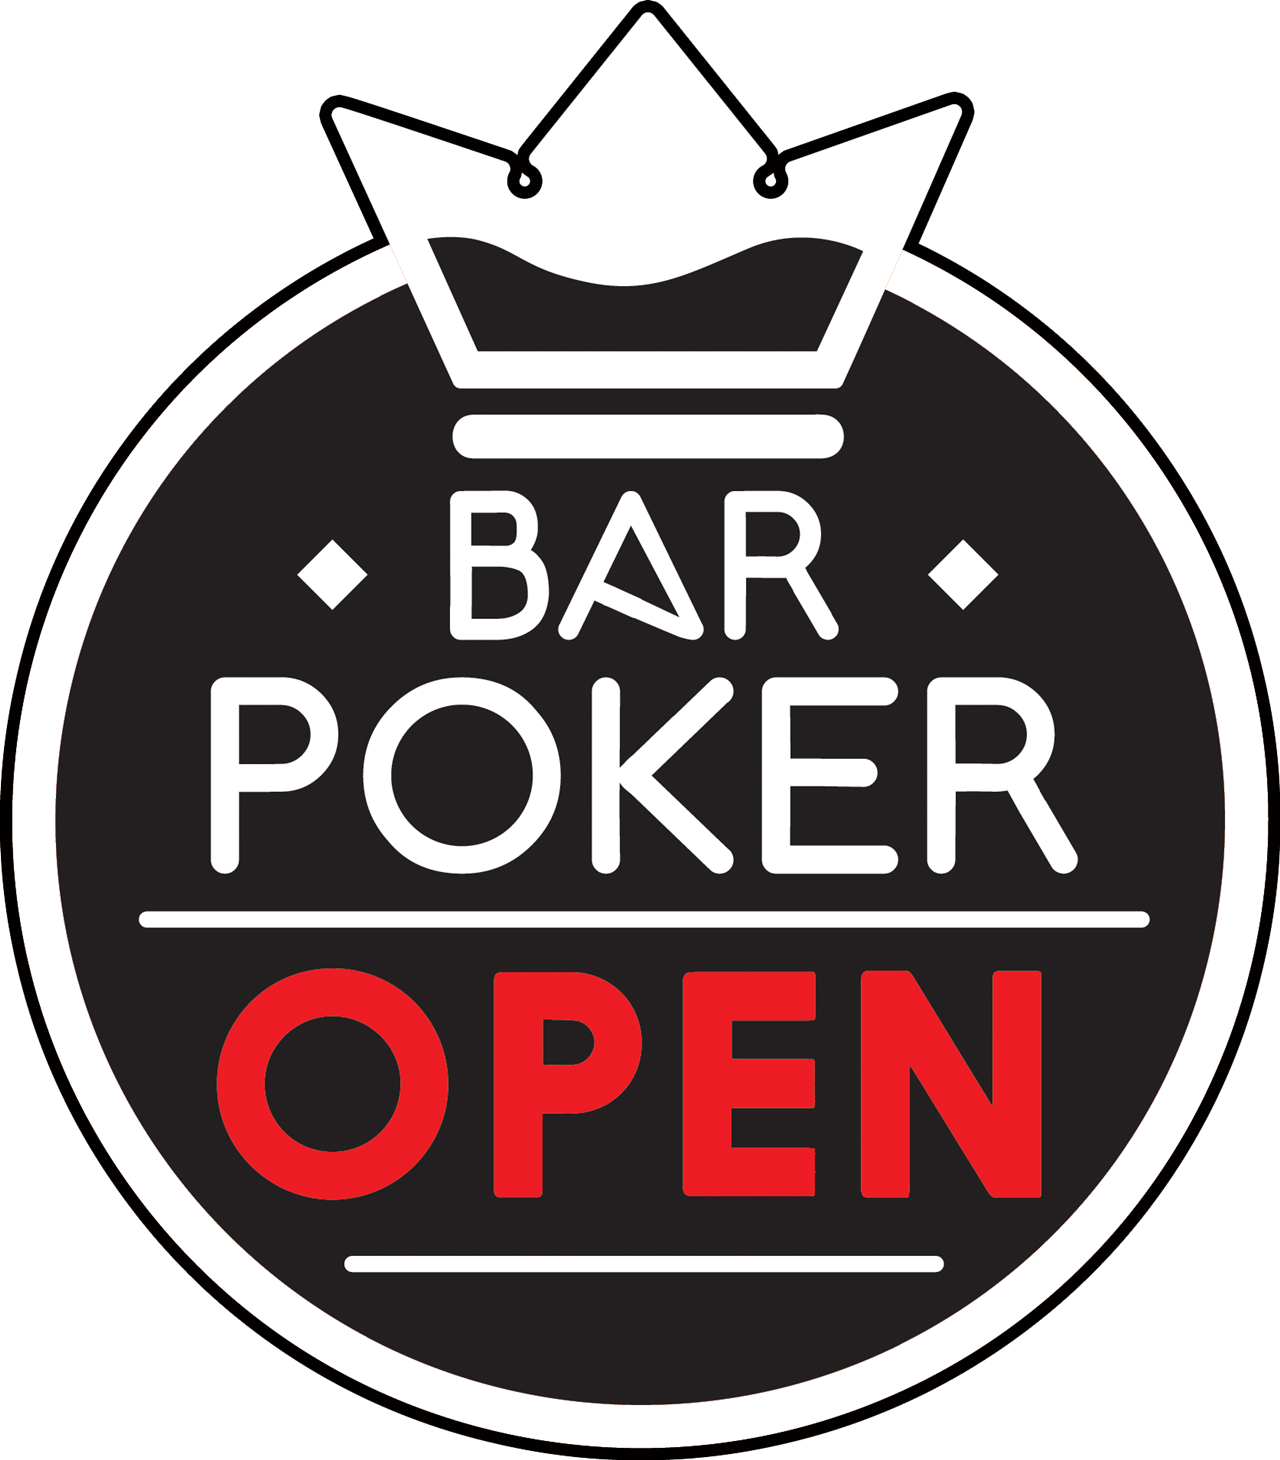 BAR POKER OPEN NATIONAL CHAMPIONSHIP